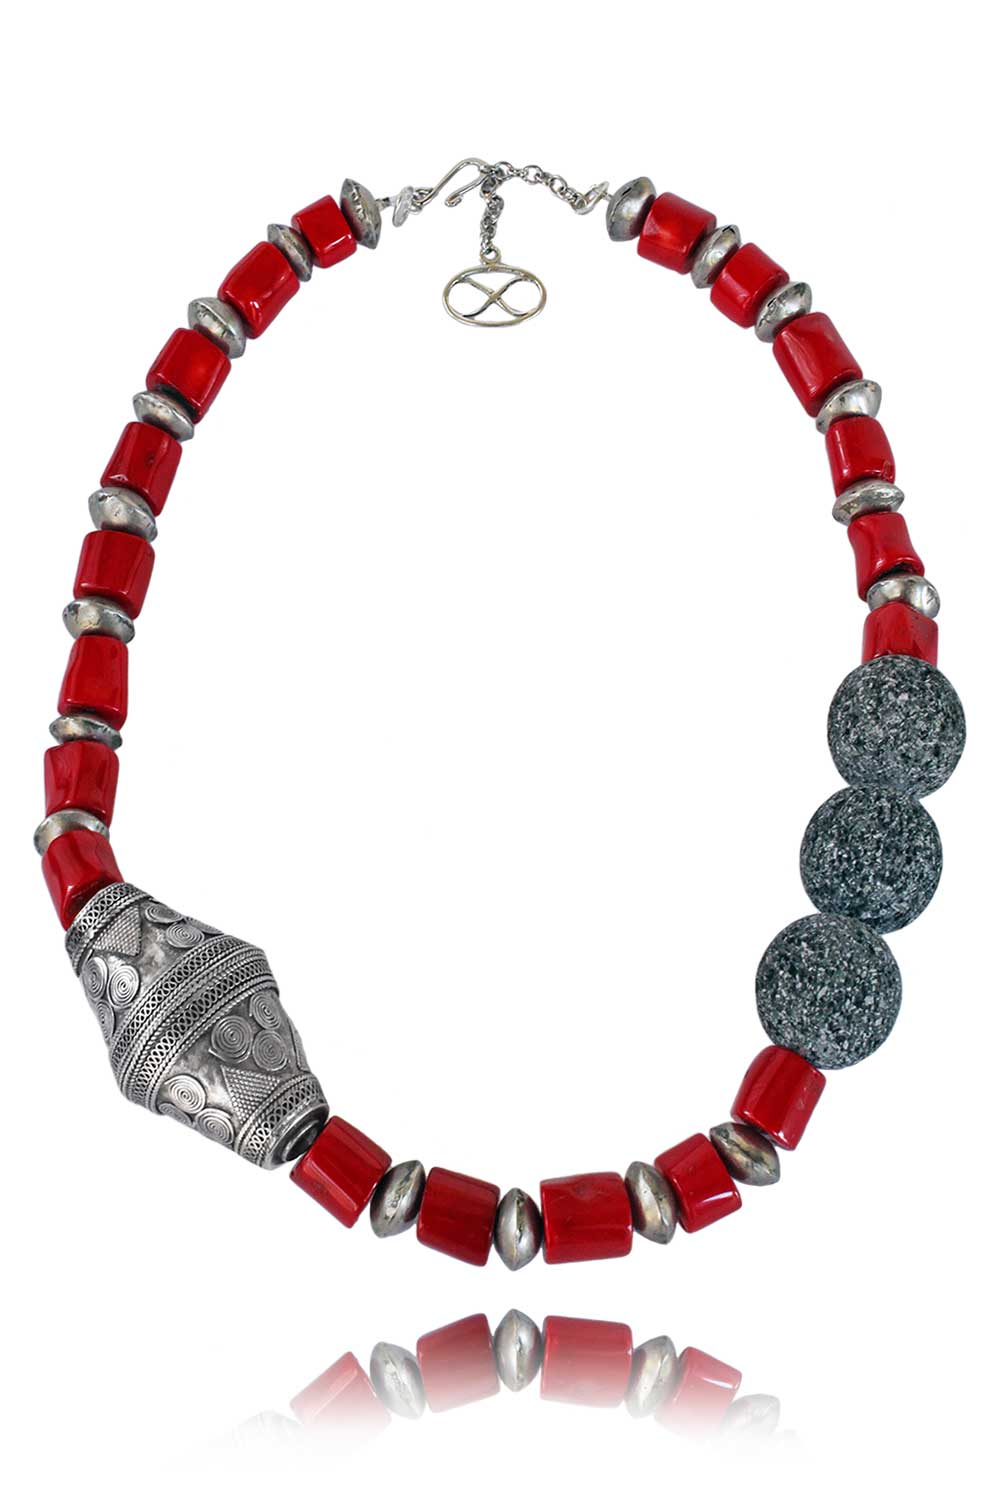 Omani Bead with Coral and Lava Necklace by SHIKHAZURI